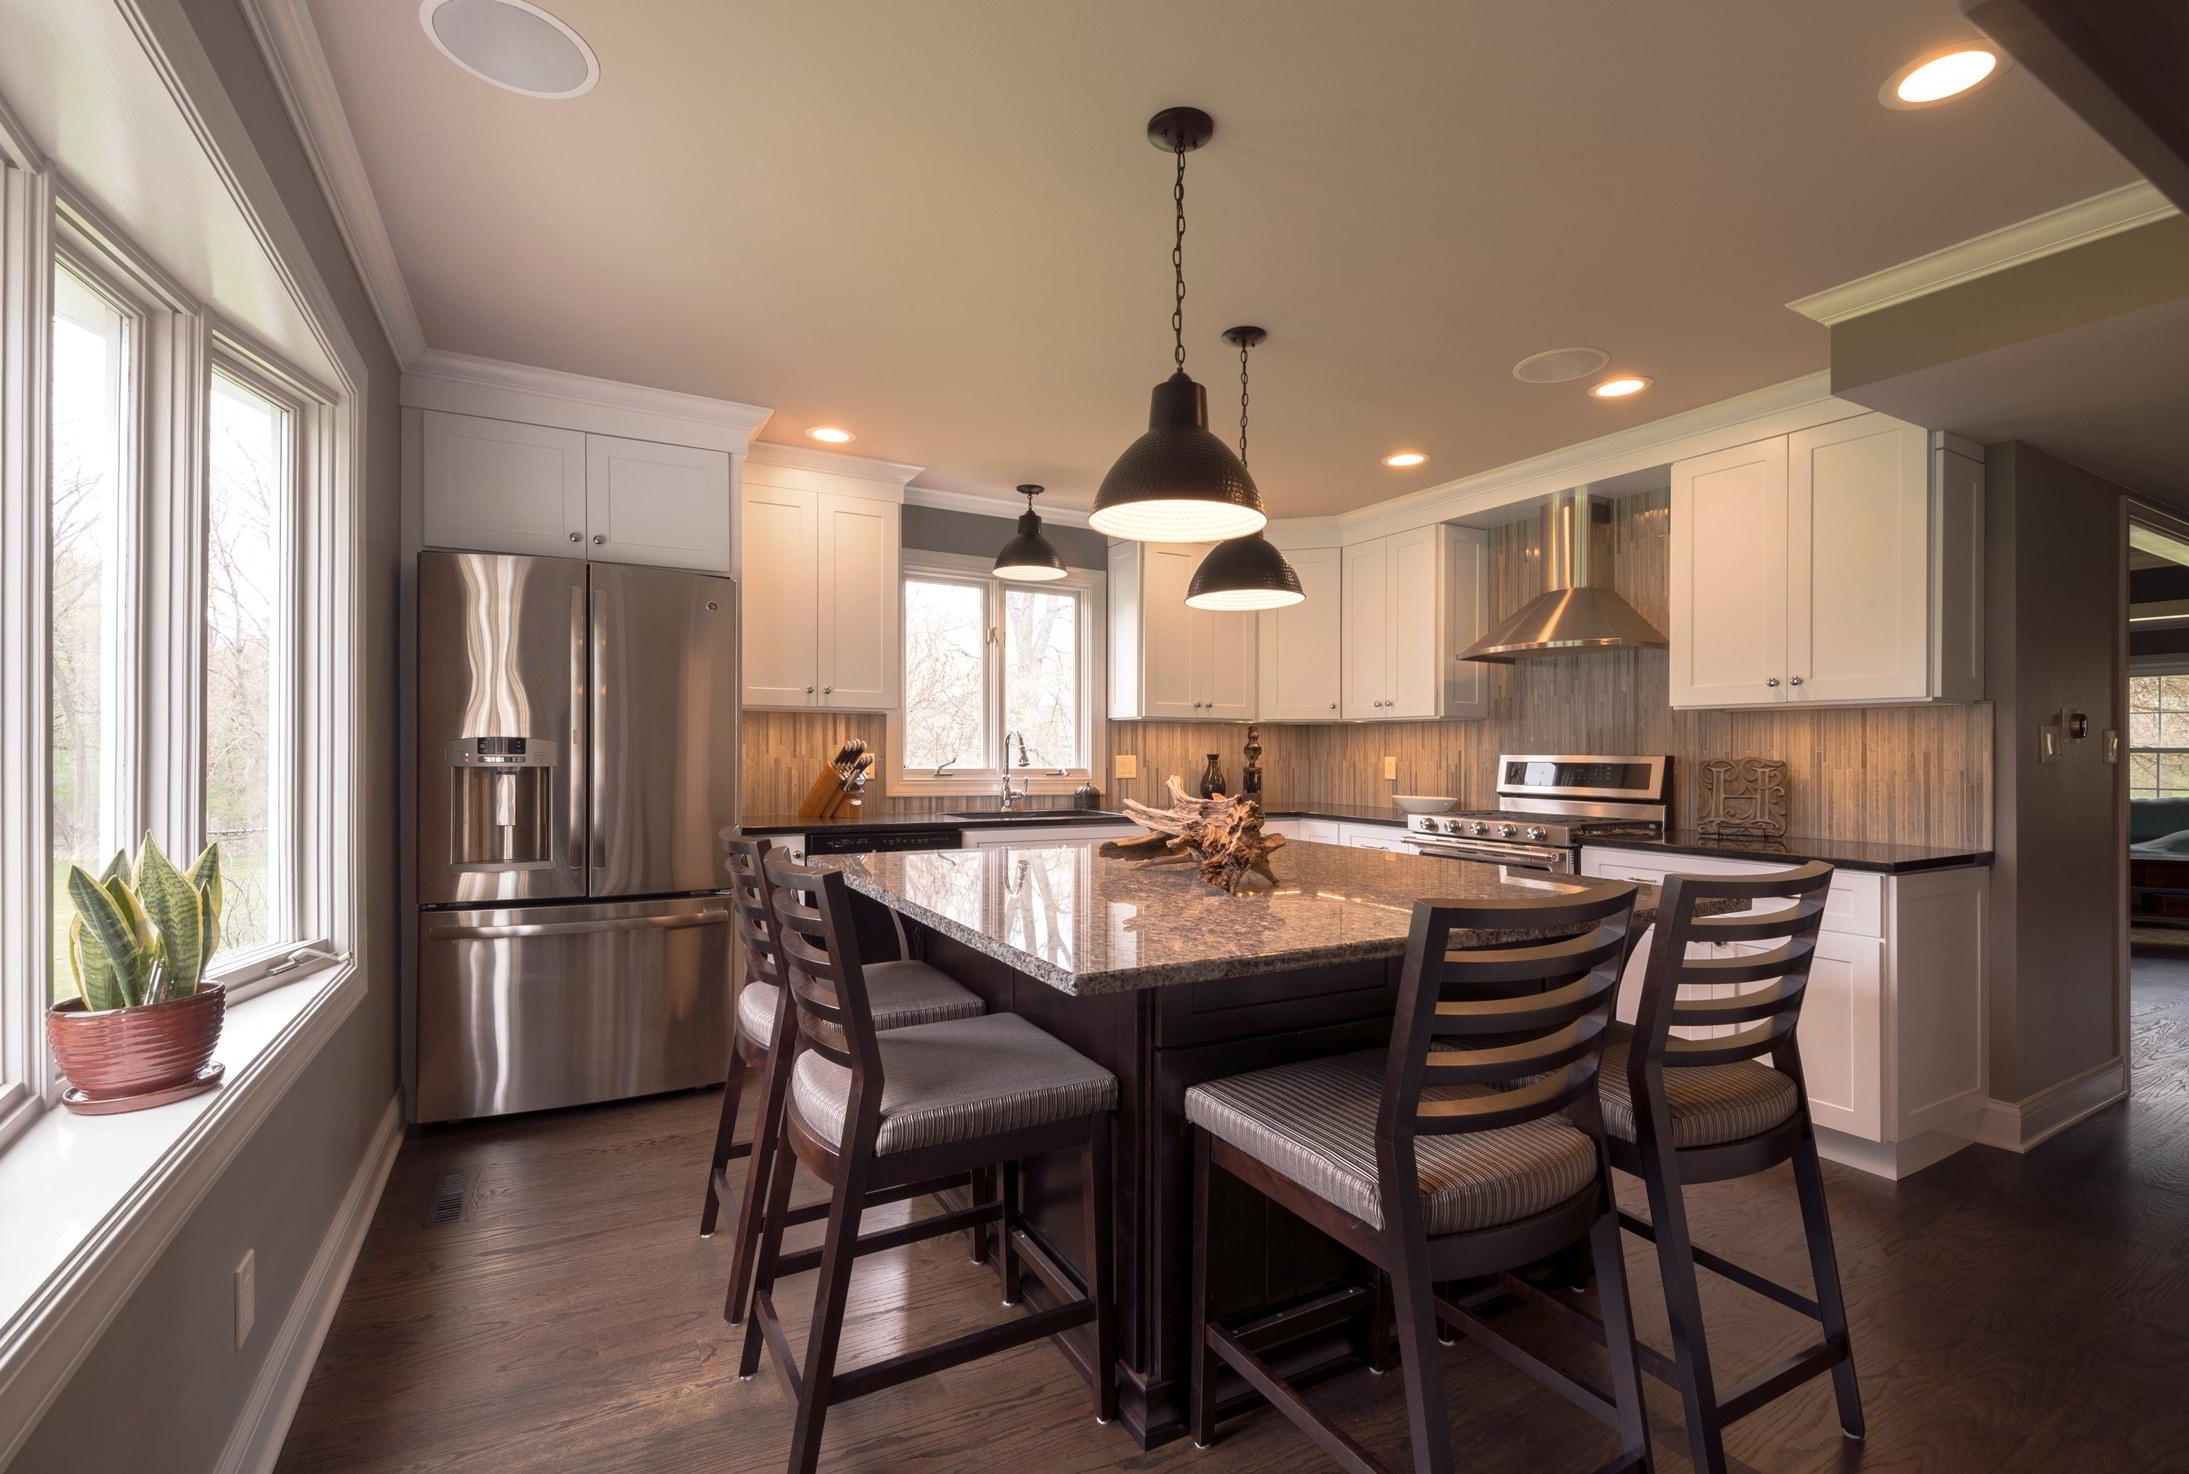 Kitchen Design Portfolio Expert Design & Build